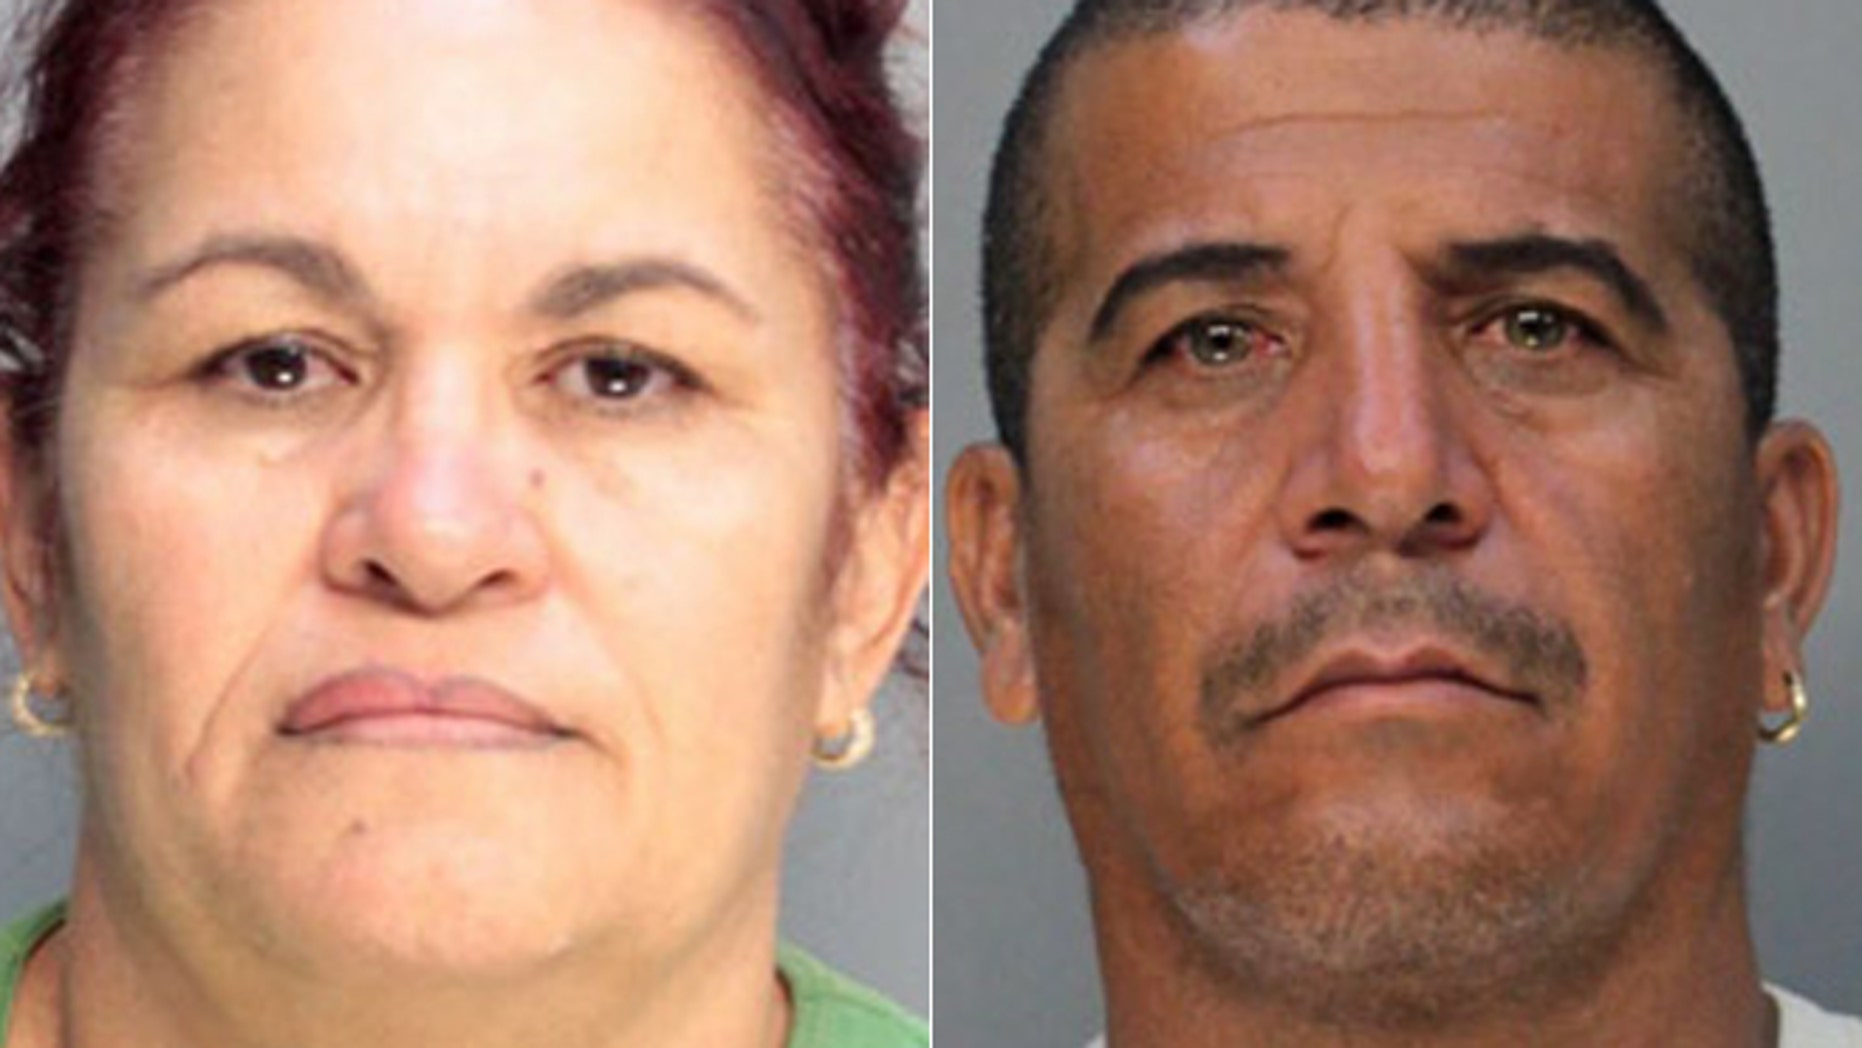 Lazara Lopez and Julio Valdes were charged with drug possession and trafficking, according to CBS Miami.